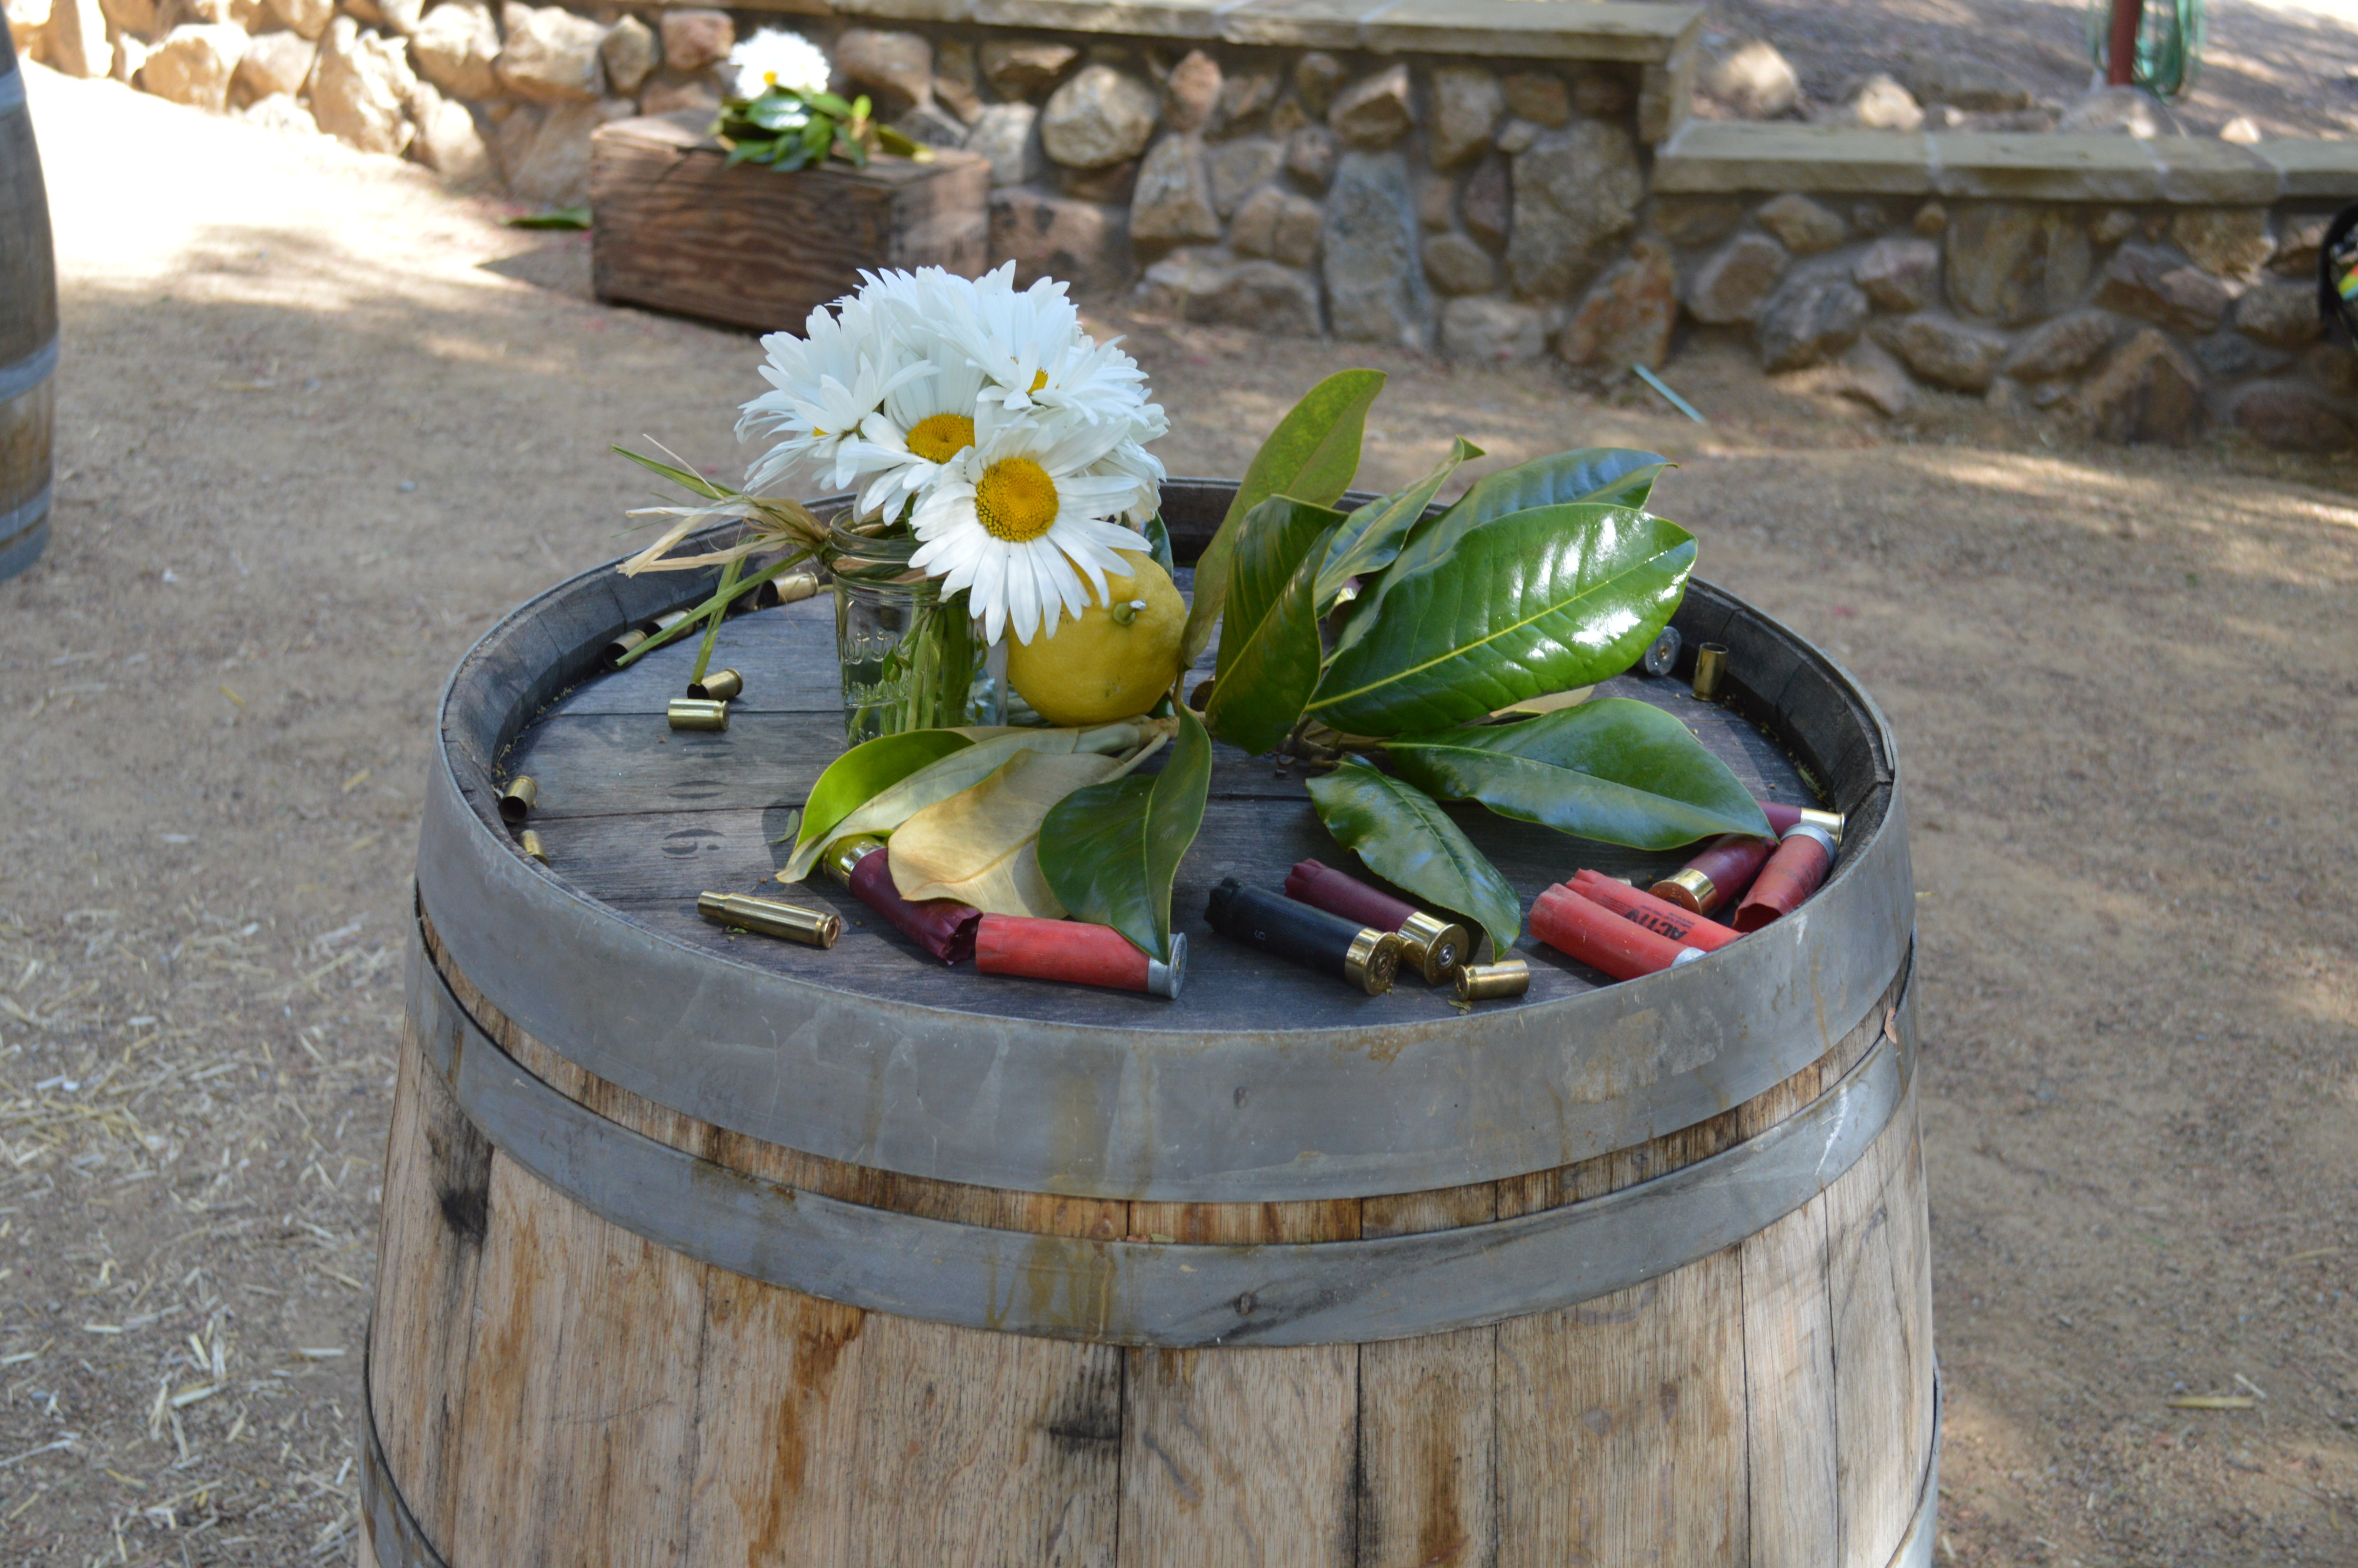 Wine Barrel Bar Table wit Shotgun Shells and Flowers - Country Wedding